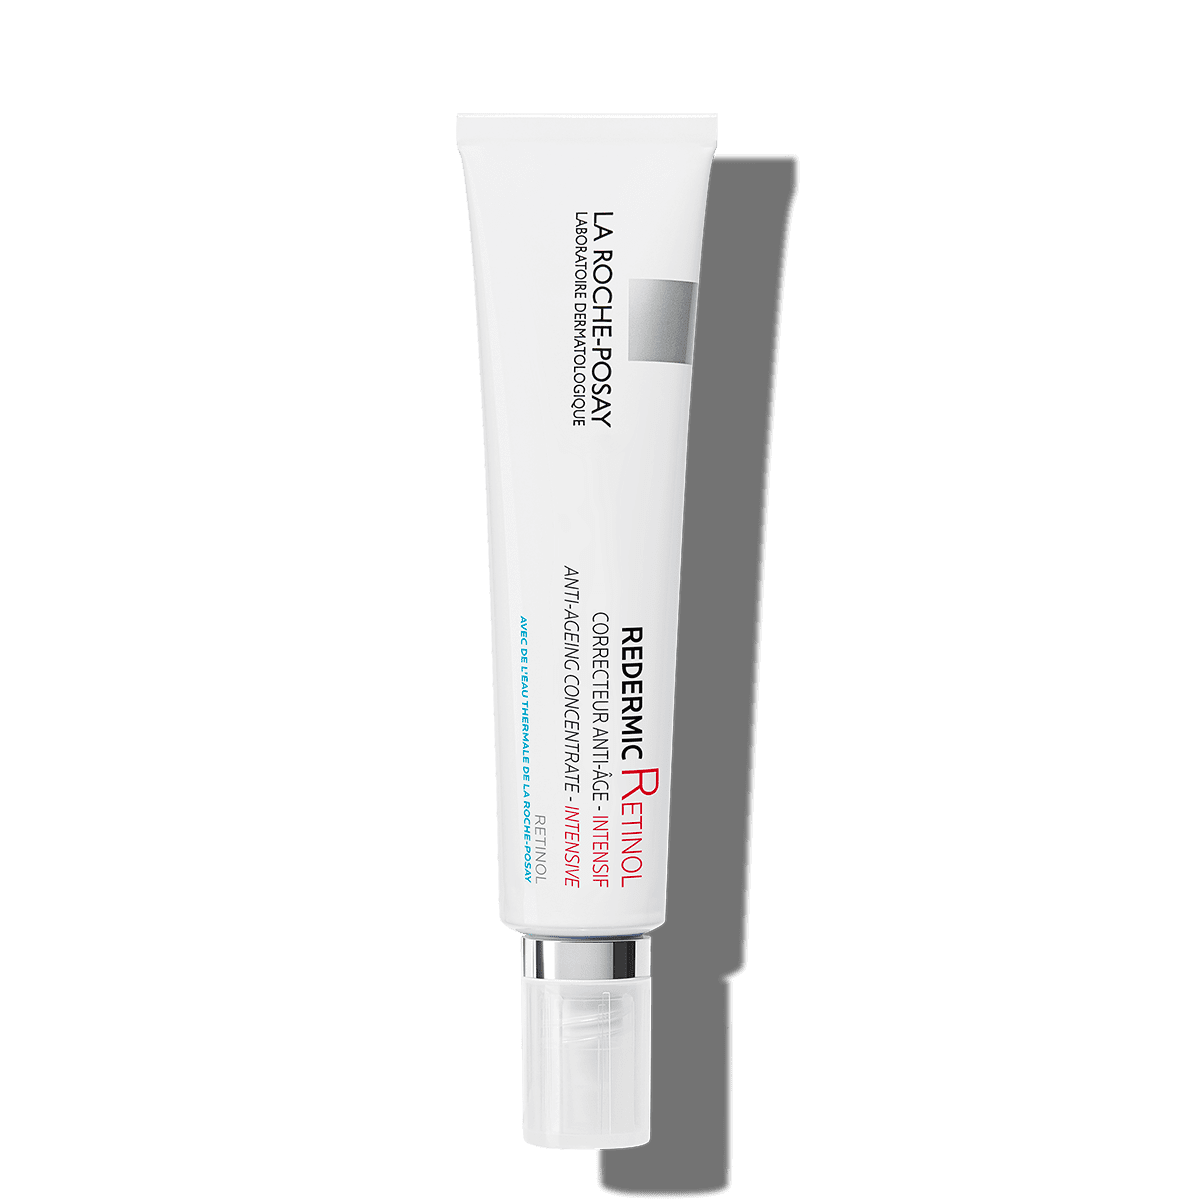 Redermic Retinol Concentrate Intensive 30ml